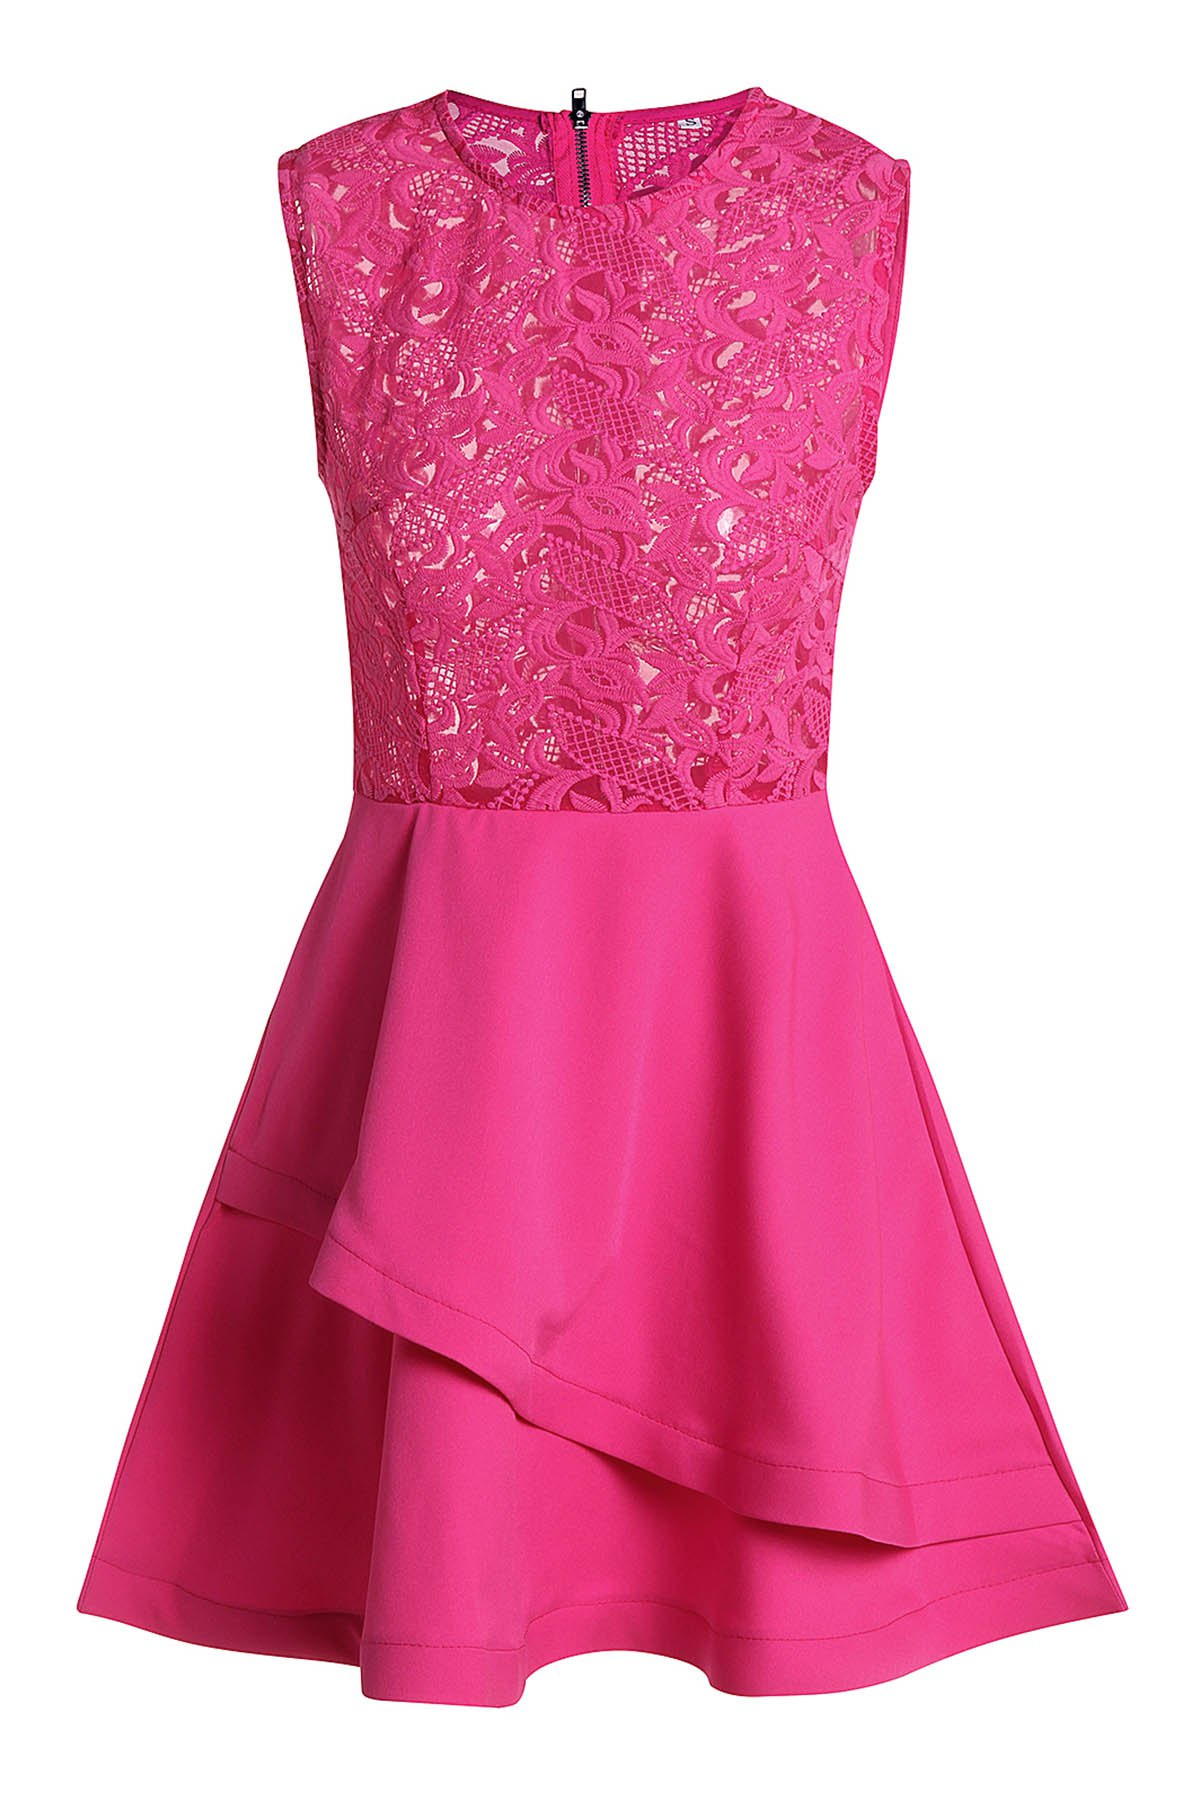 Alluring Round Collar Sleeveless See-Through Spliced Women's Club Dress - ROSE XL